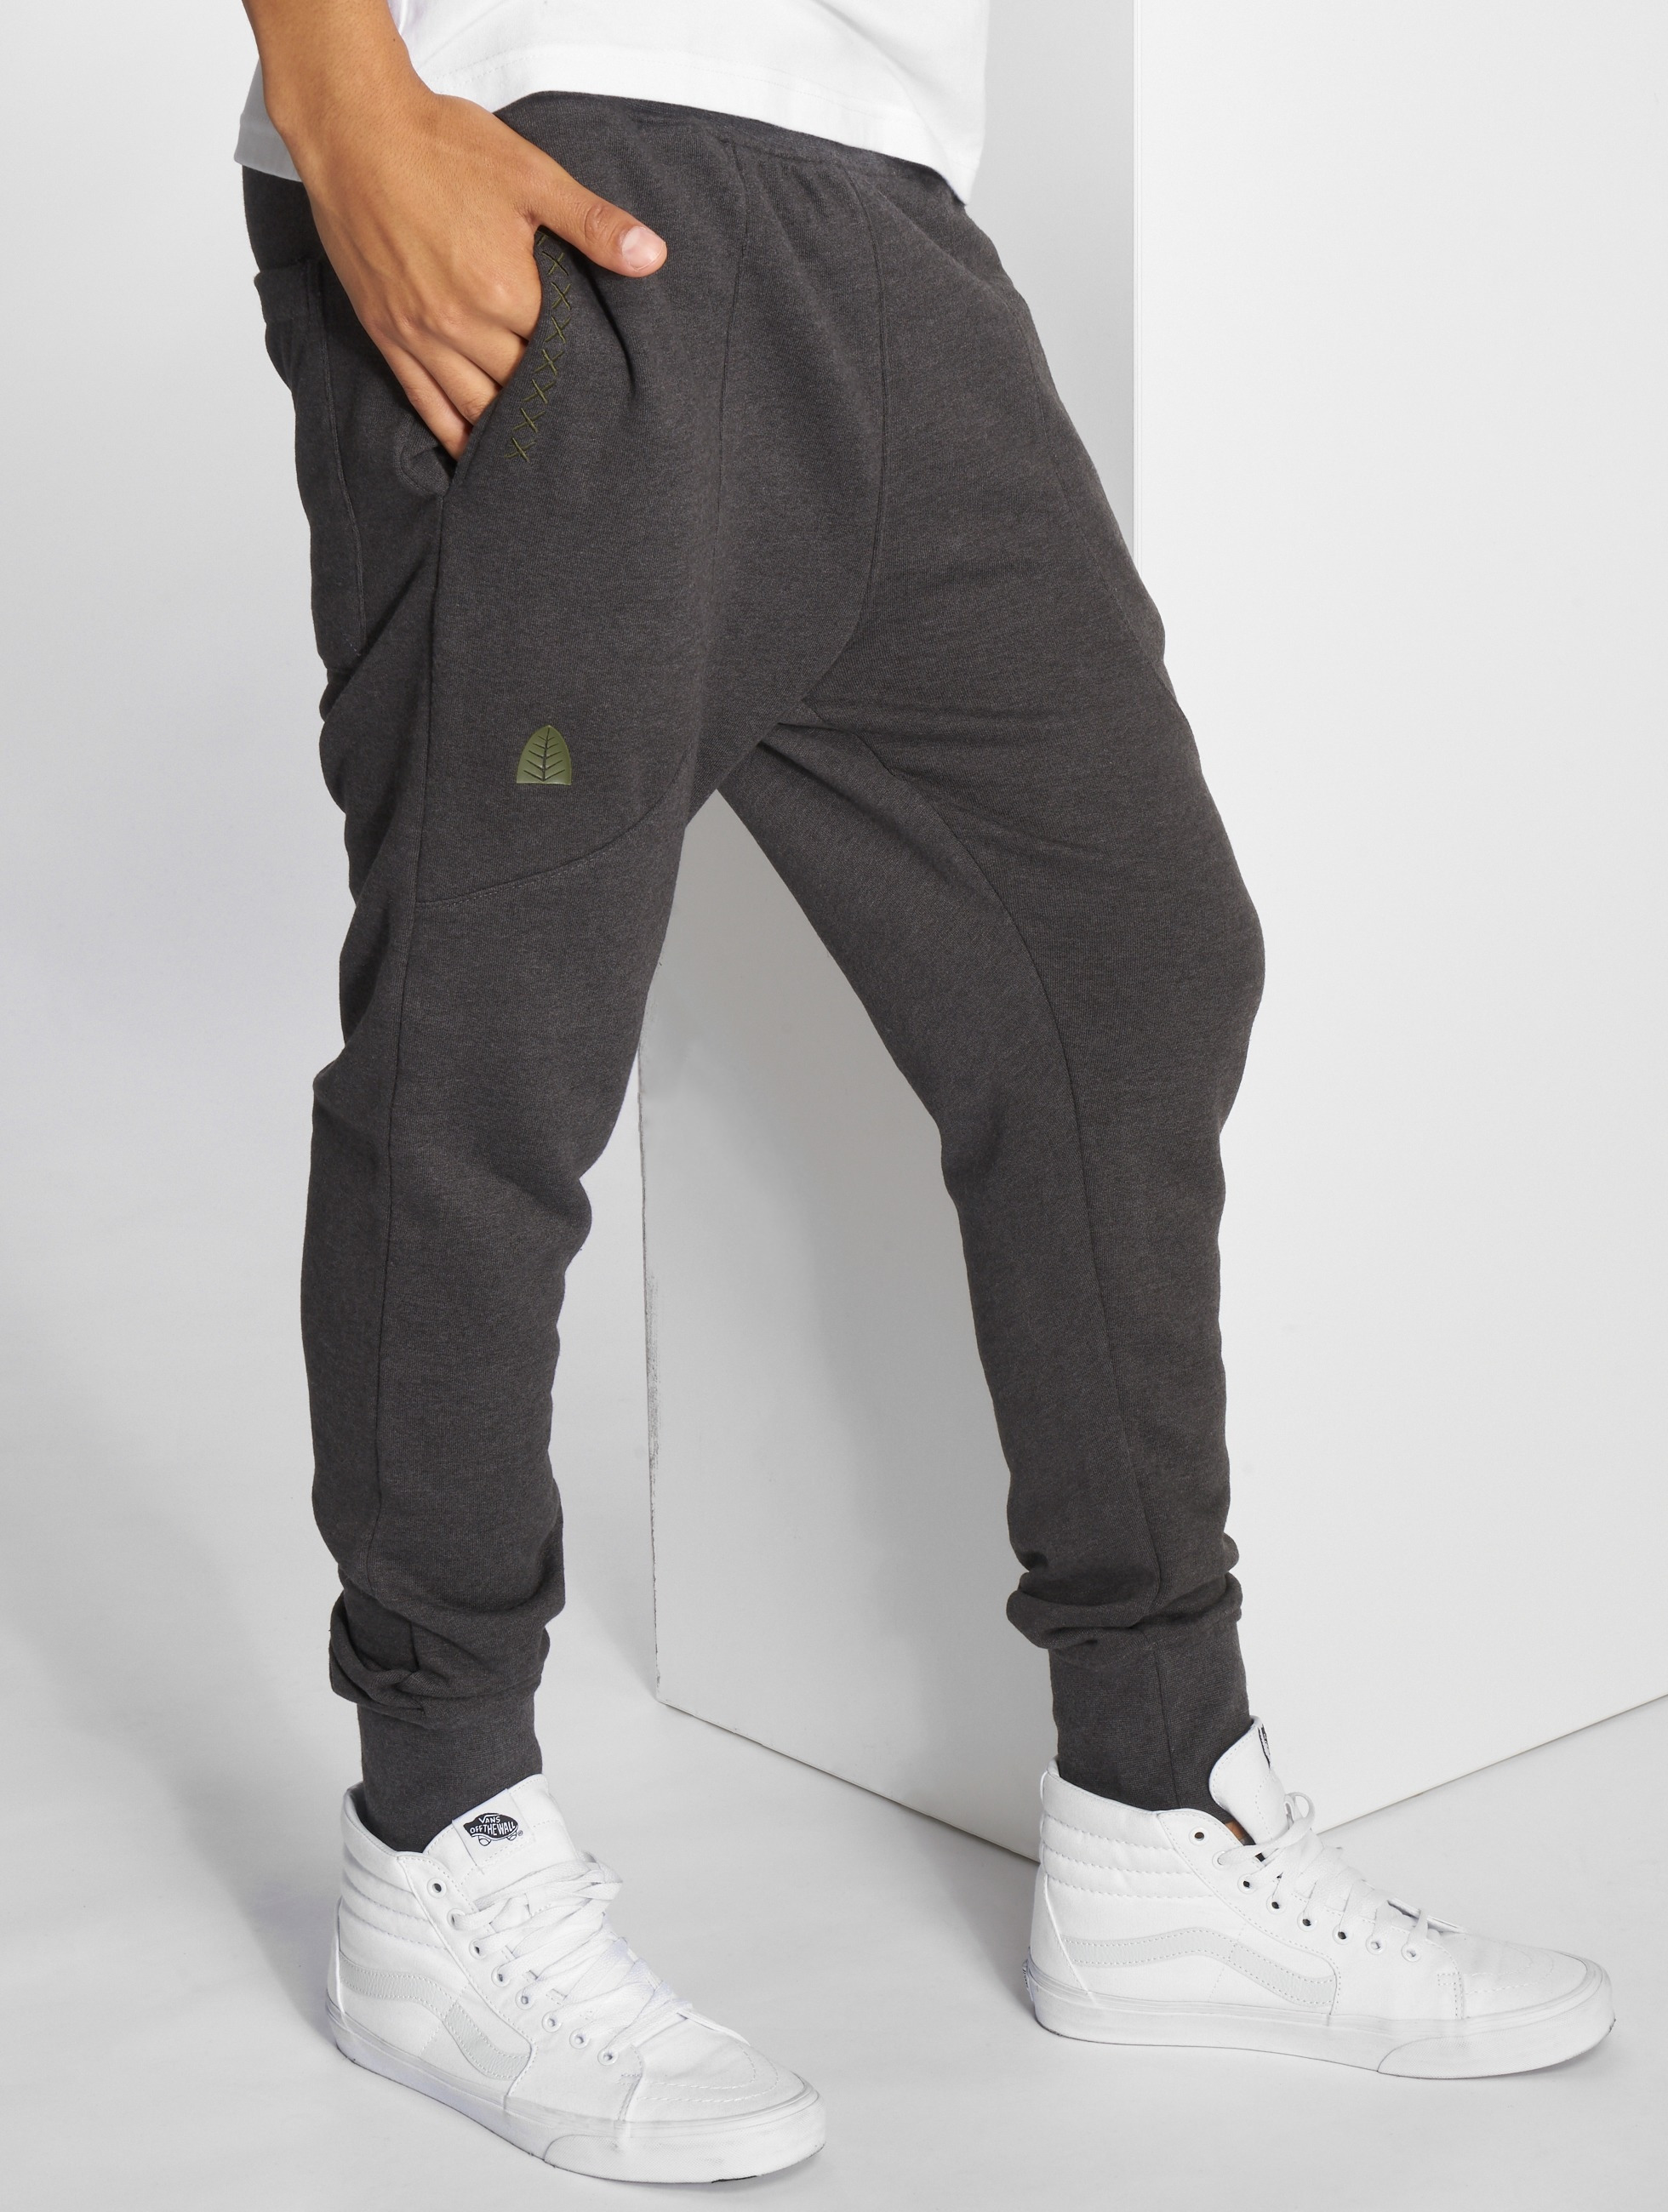 Just Rhyse / Sweat Pant Skagway in gray S